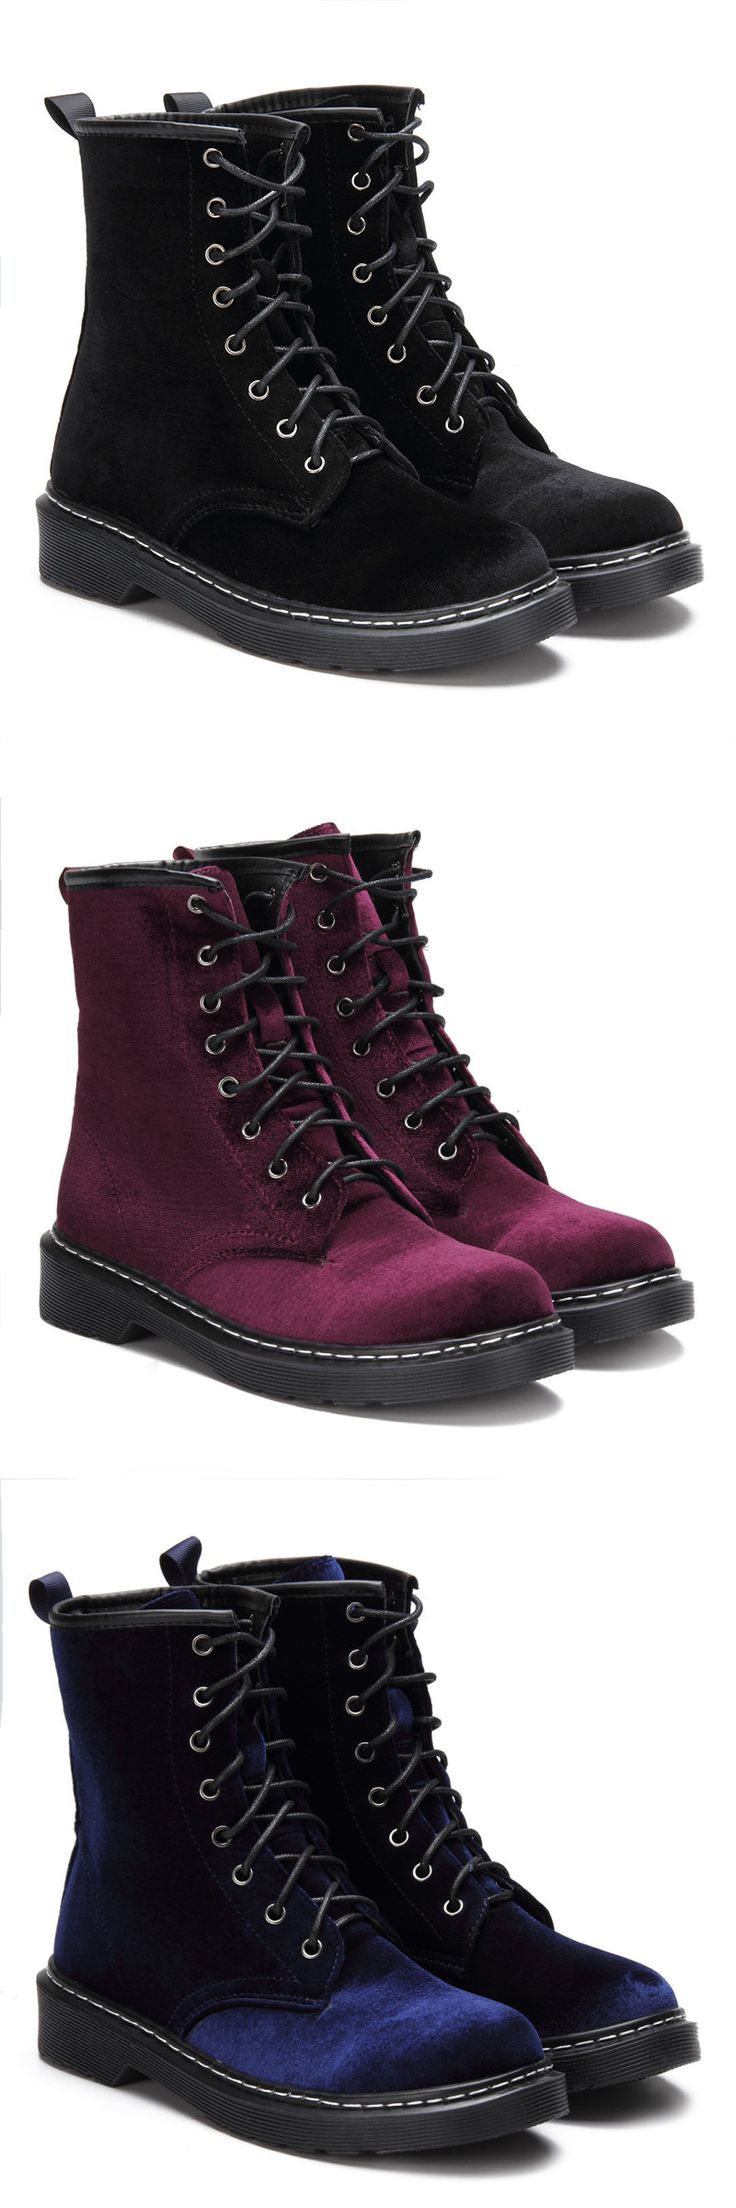 Velvet Lace-up Design Short Boots